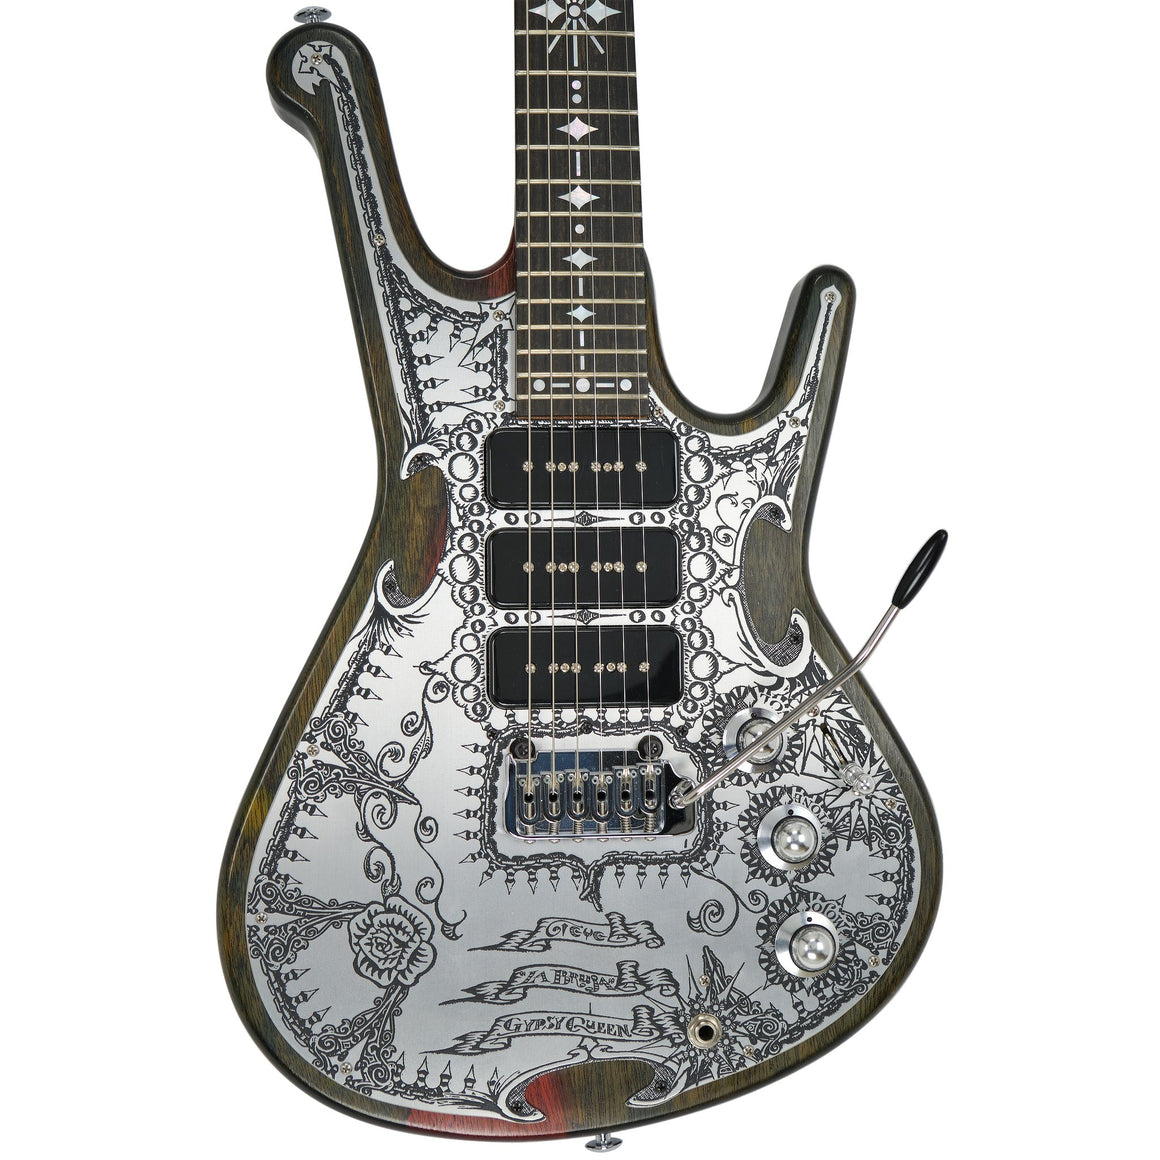 "Teye Guitars Qypsy Queen ""La Bruja"" - Distortion Brothers Guitar Shop"